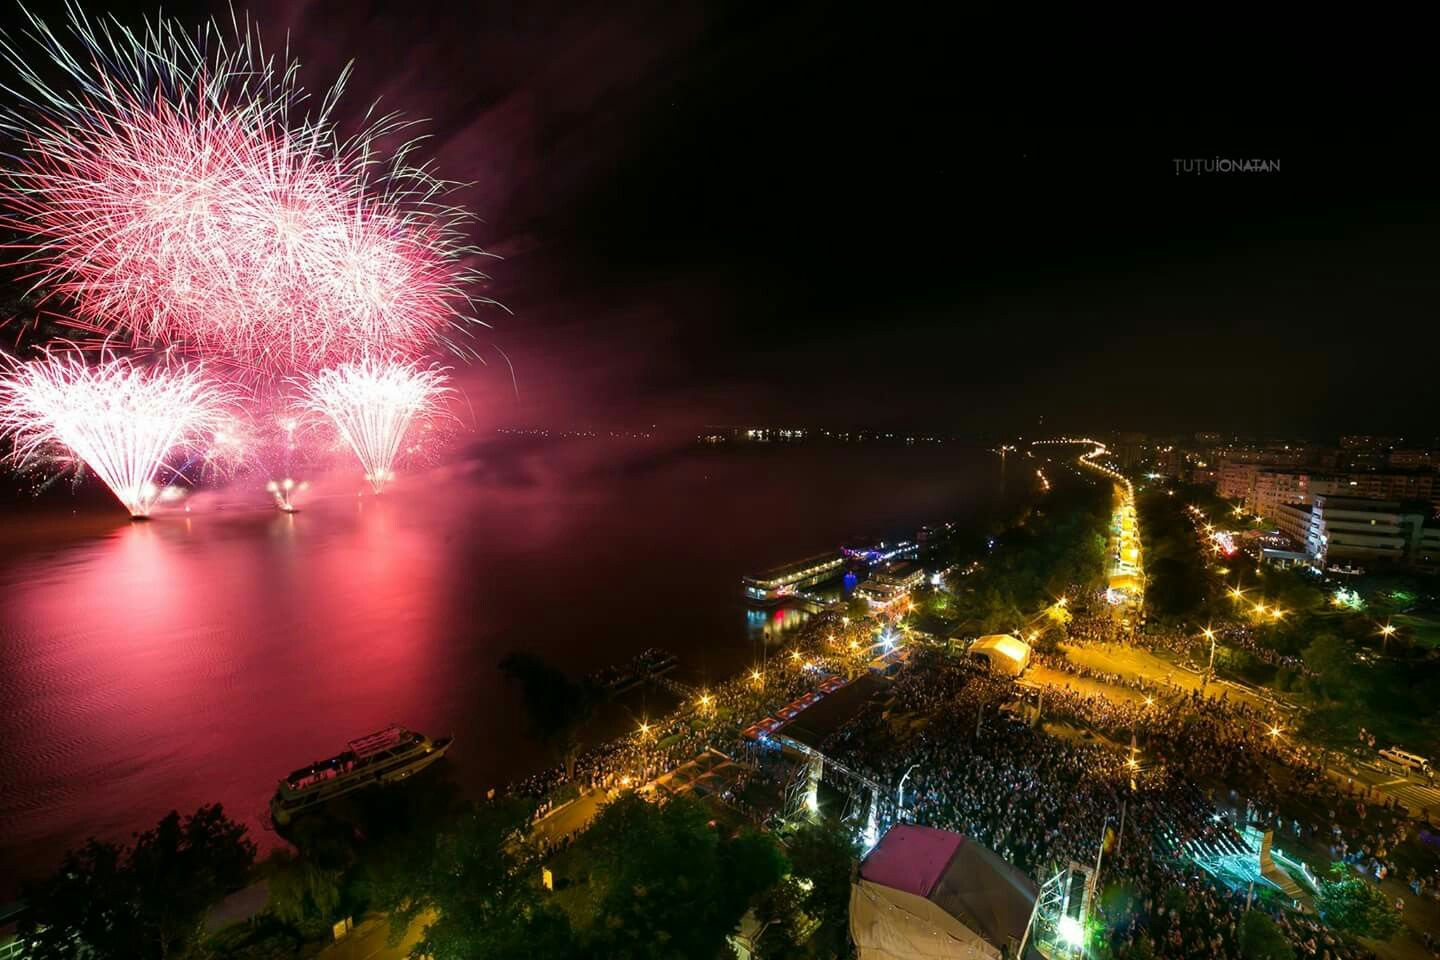 Incredible view over the city, fireworks